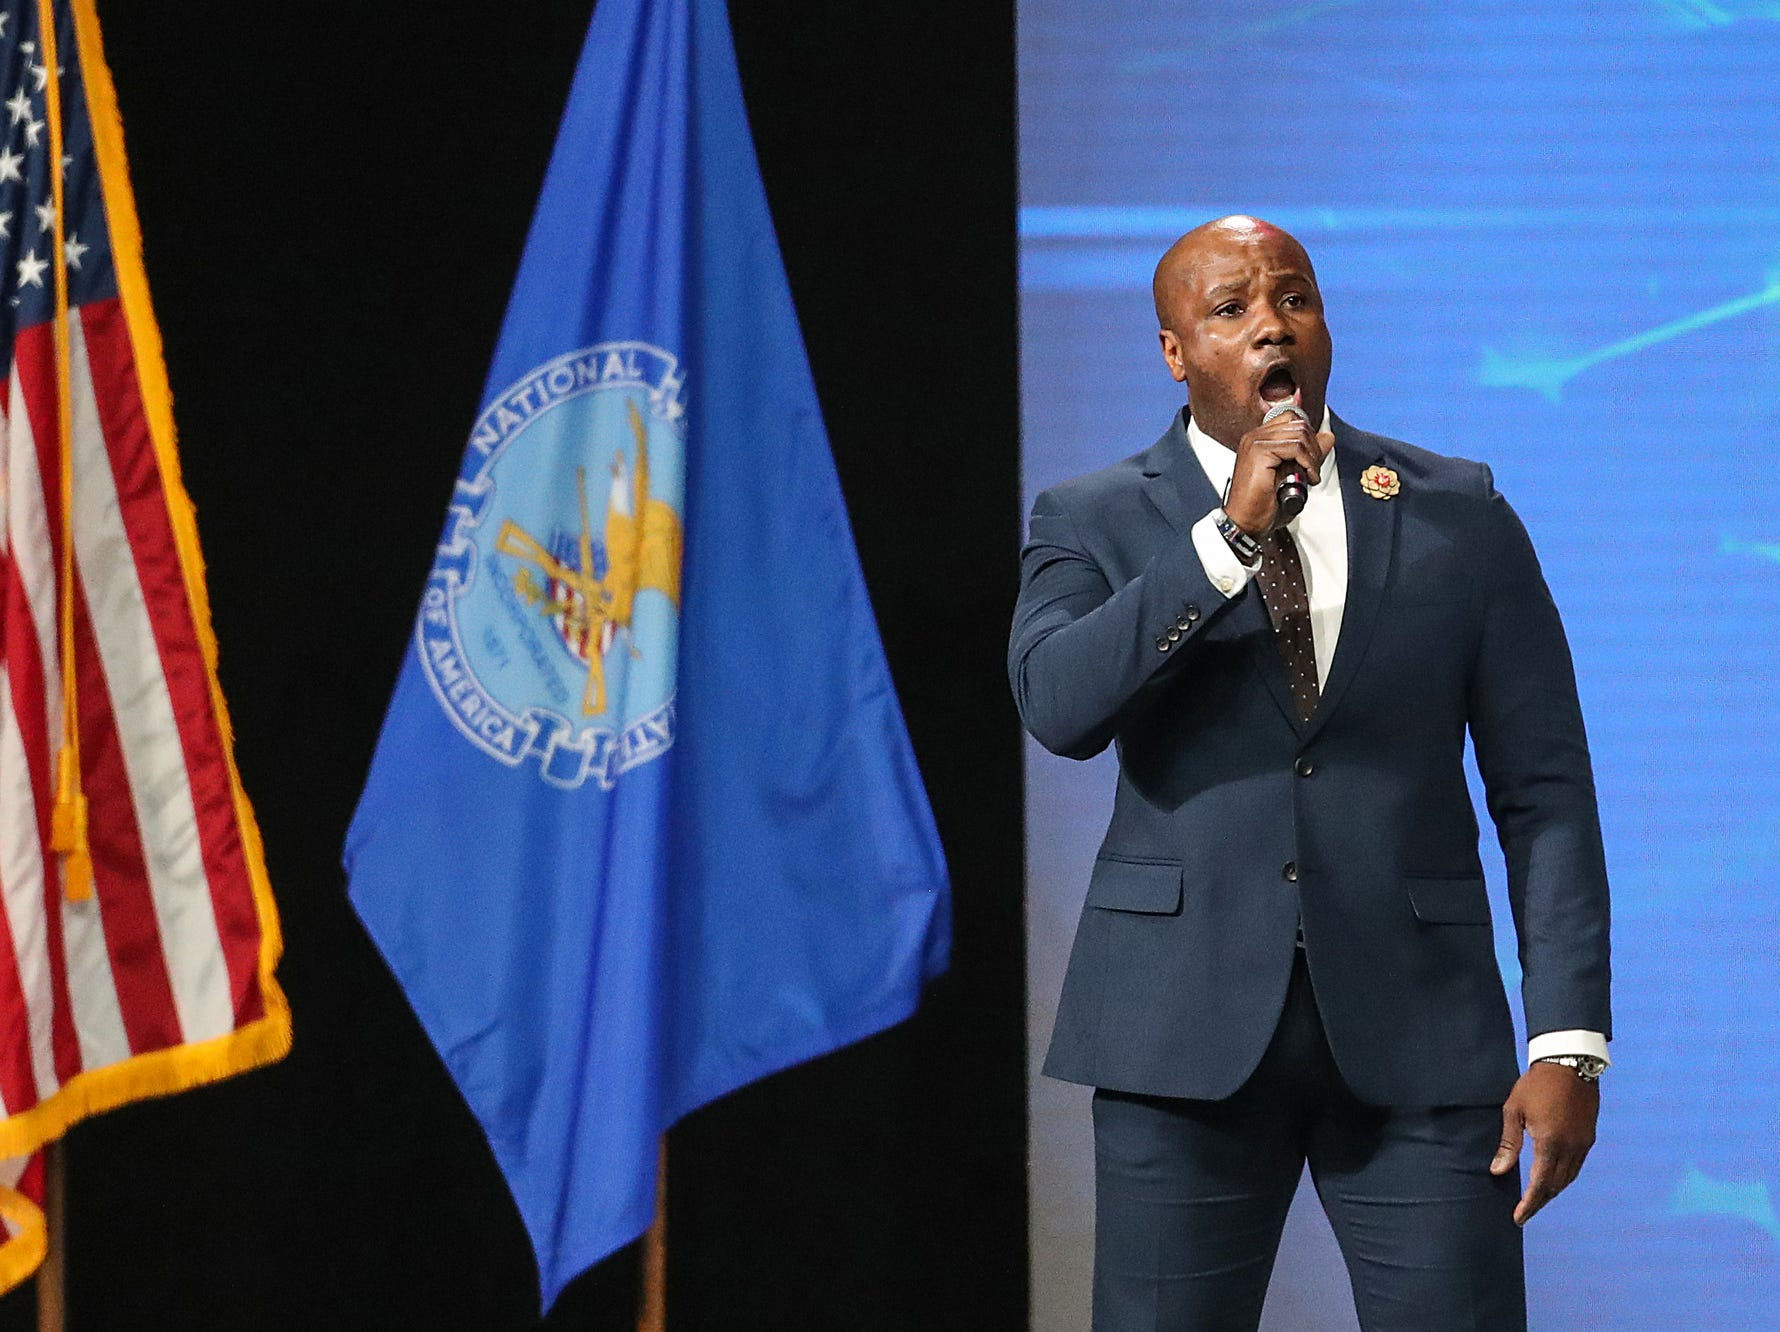 IMPD officer Chris Wilburn sings the National Anthem before the National Rifle Association Institute for Legislative Action Leadership Forum, Friday, April 26, 2019, at Lucas Oil Stadium in Indianapolis.